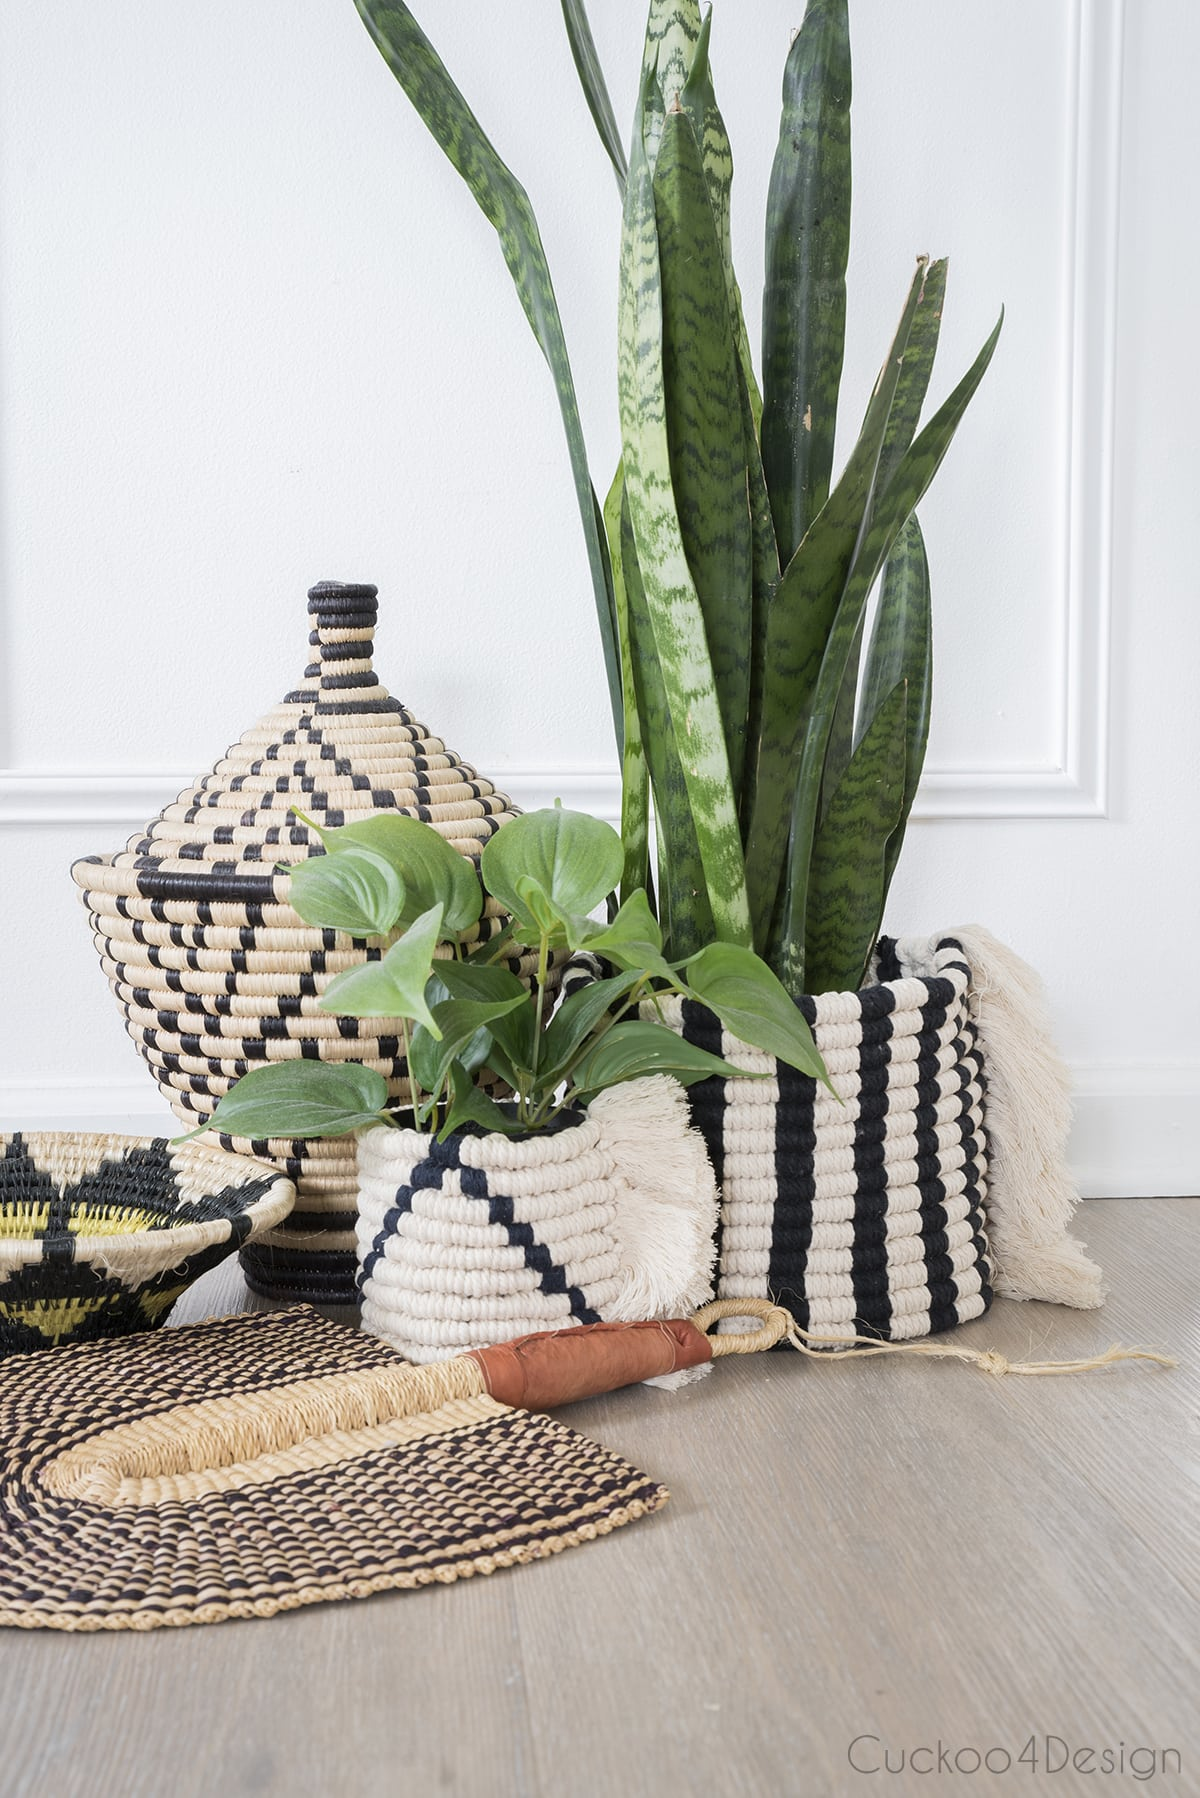 macrame planters inspired by African Wolof baskets